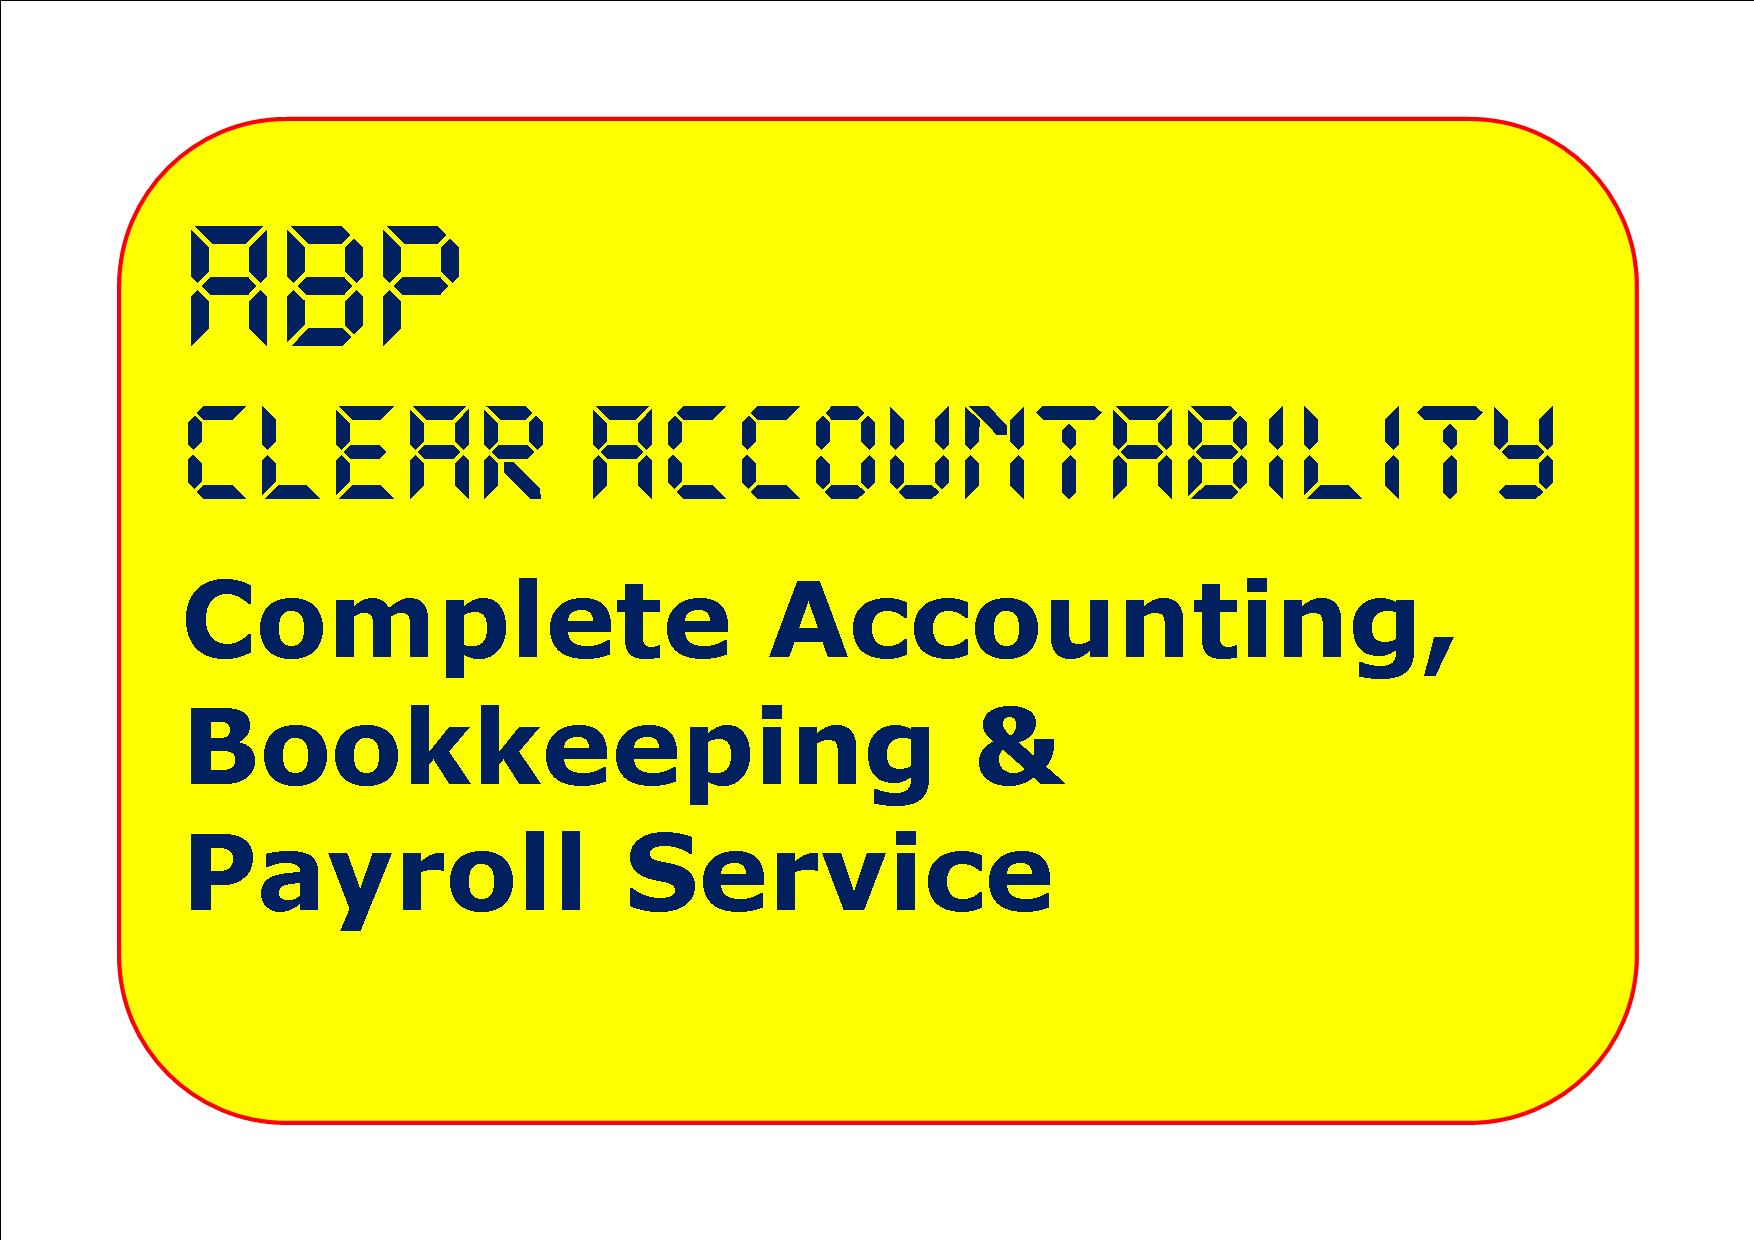 ABP Clear Accountability